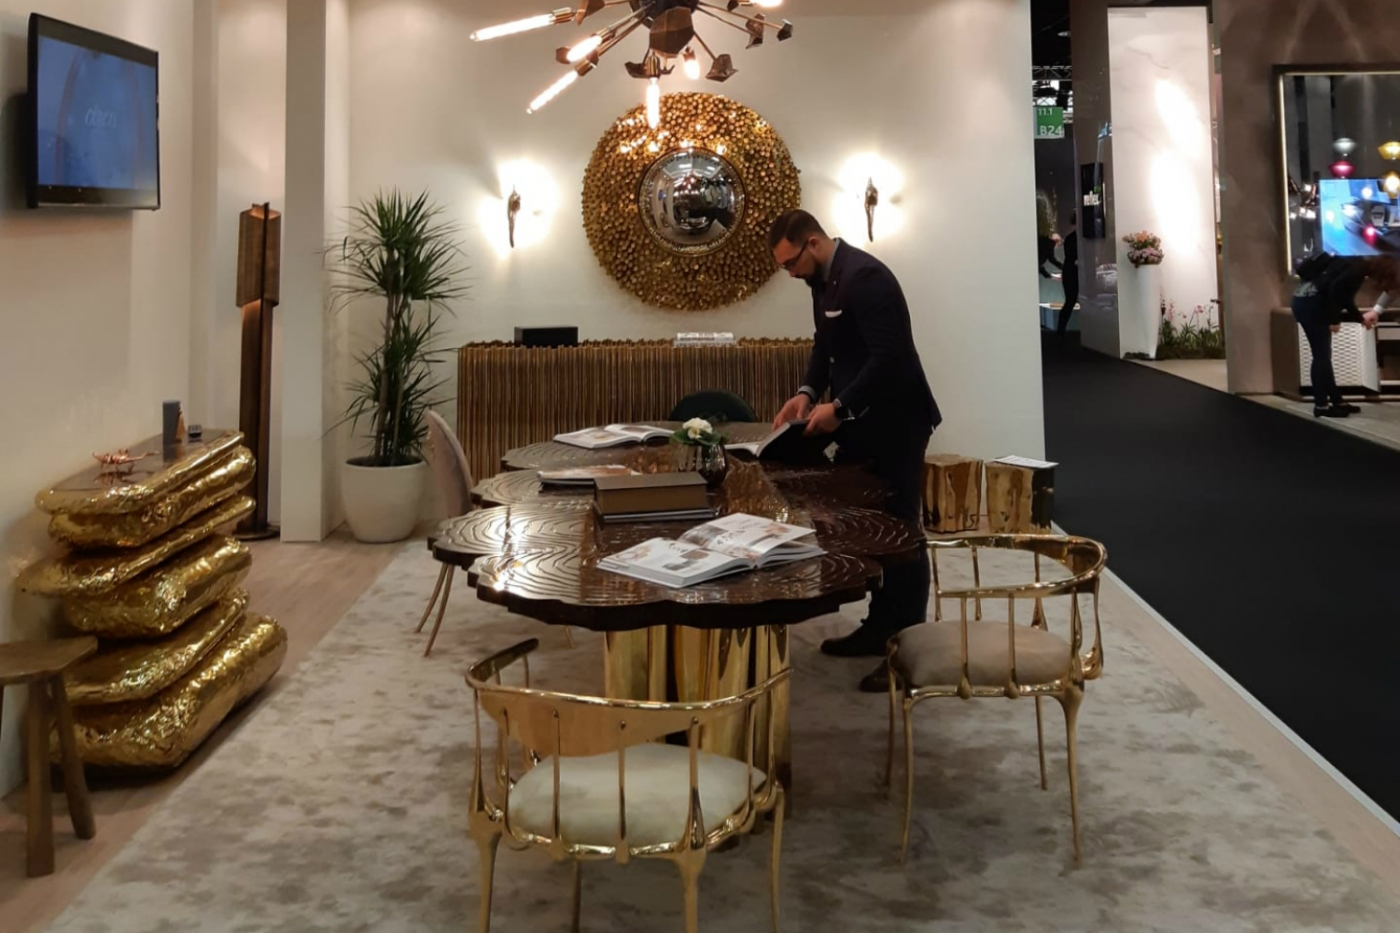 imm cologne 2020 IMM Cologne 2020: First Days' Highlights From This Modern Design Event feature 2 1400x933